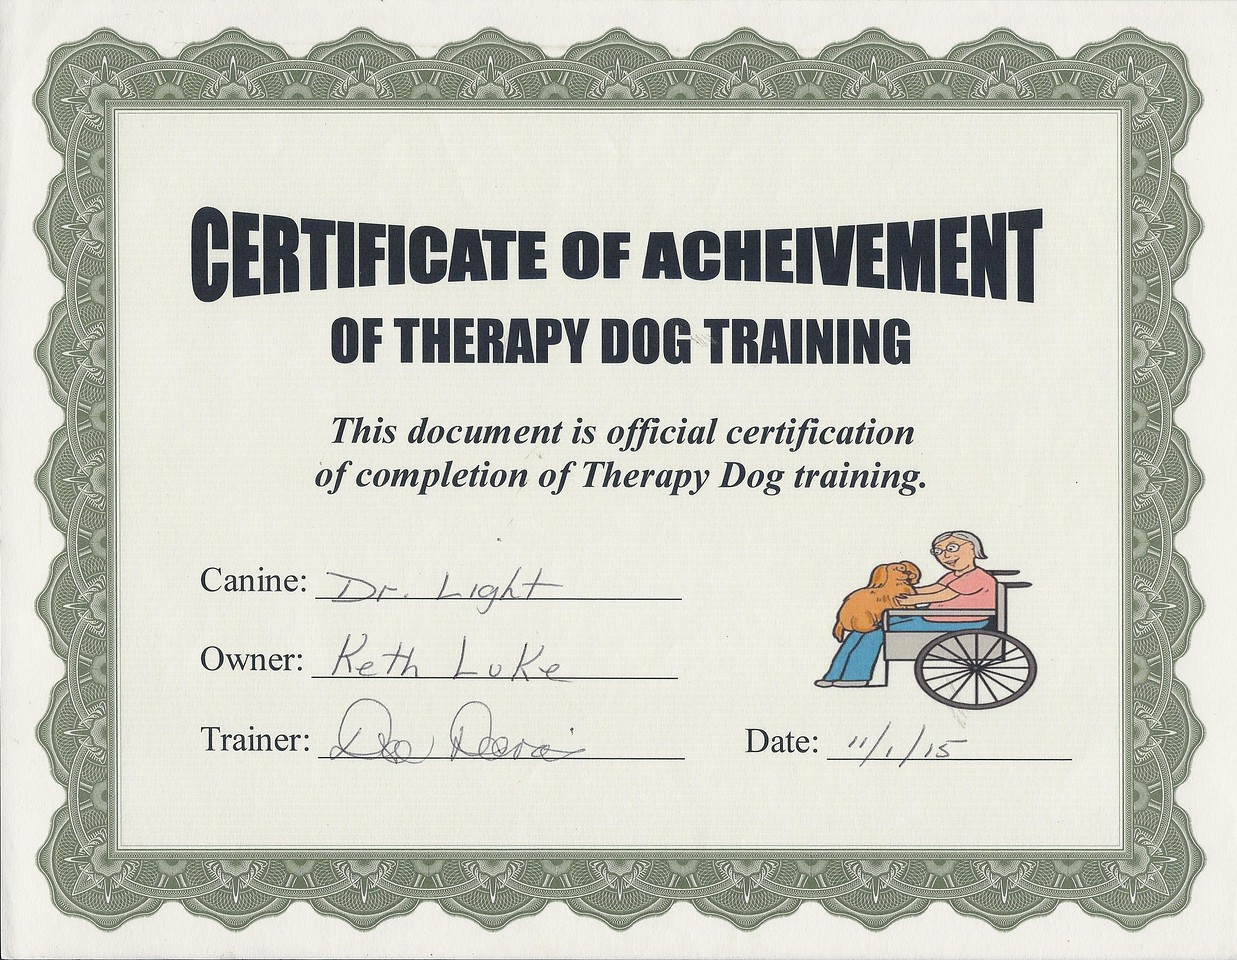 DrLight, Therapy Dog  Certification, 11 01 15